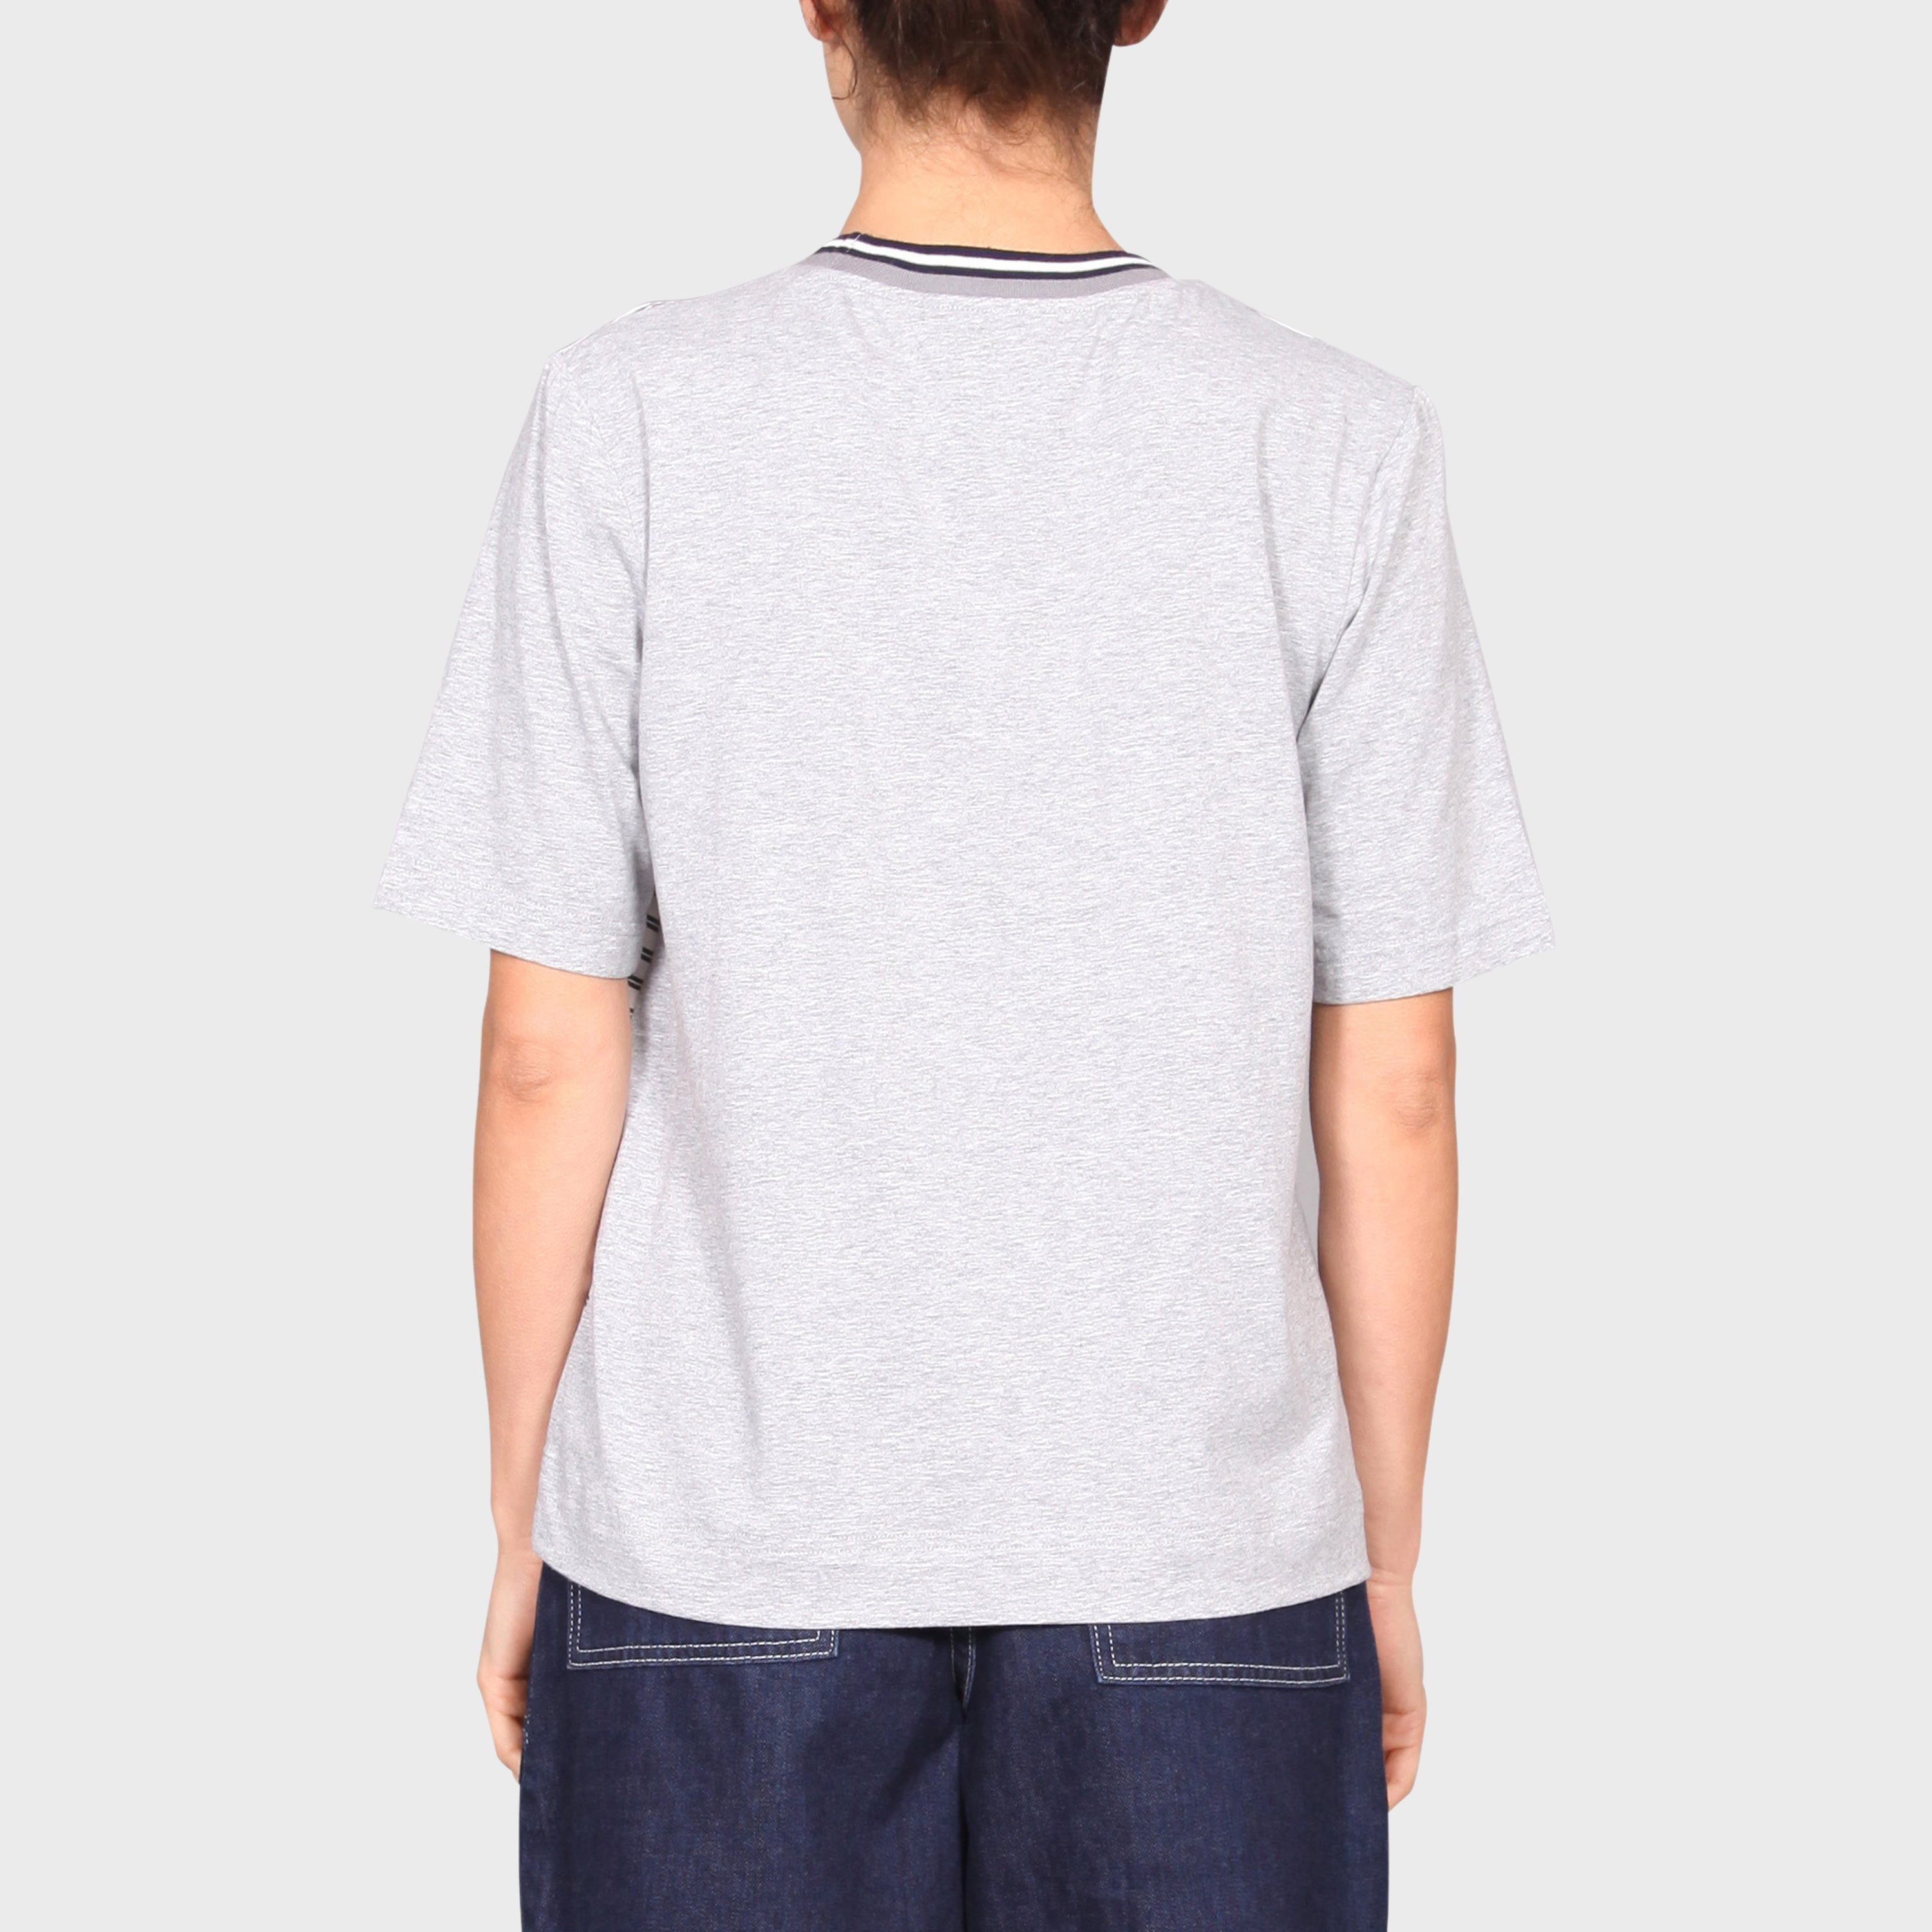 VI TOP / WHITE-NAVY-GREY